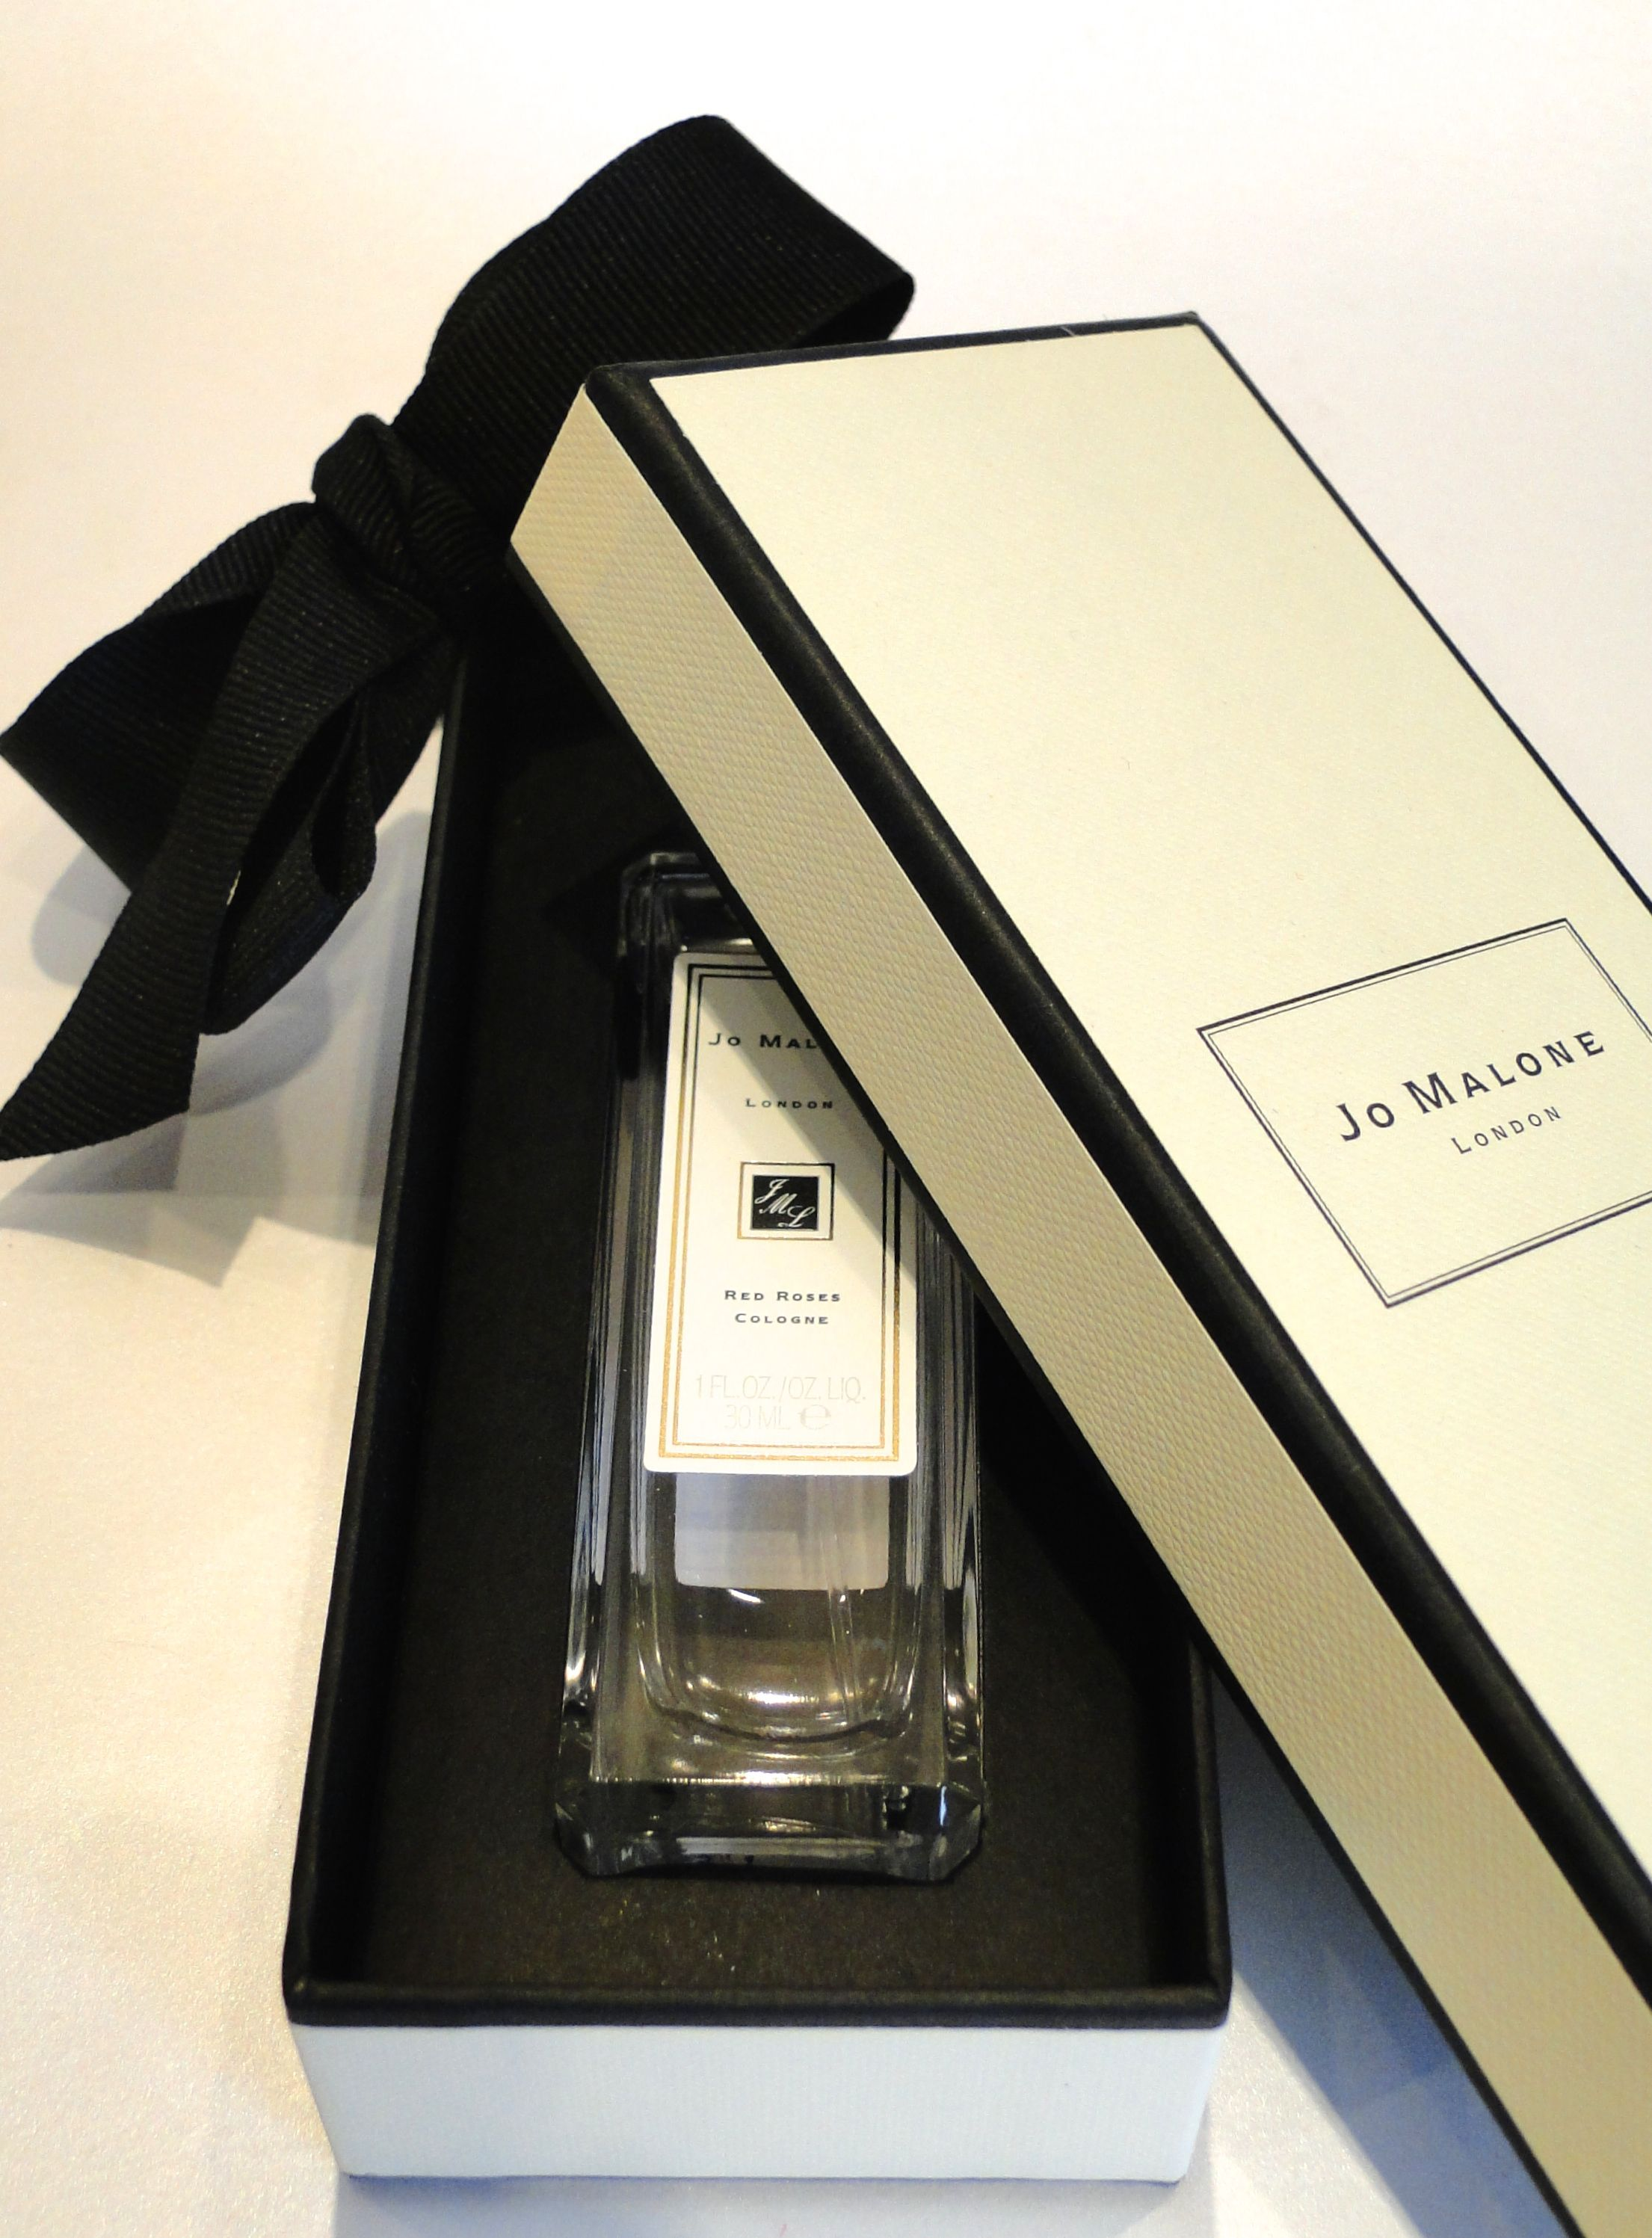 Jo malone red roses cologne box held together by a ribbon